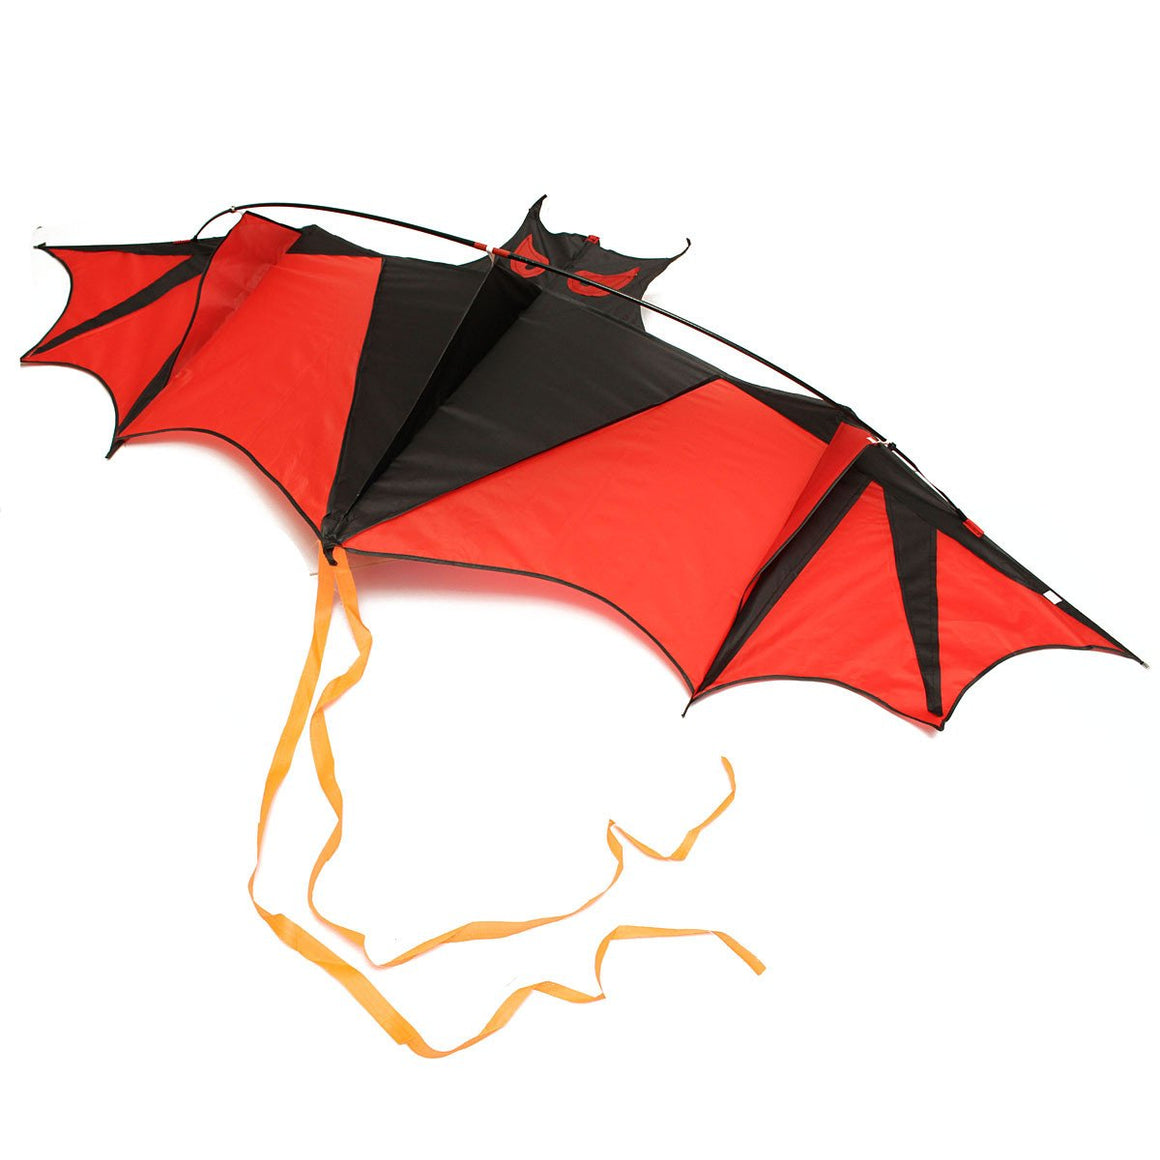 New Toys Flying Kites 190cm Huge Bat Kite Without String And Handle Outdoor fun Sports Toys